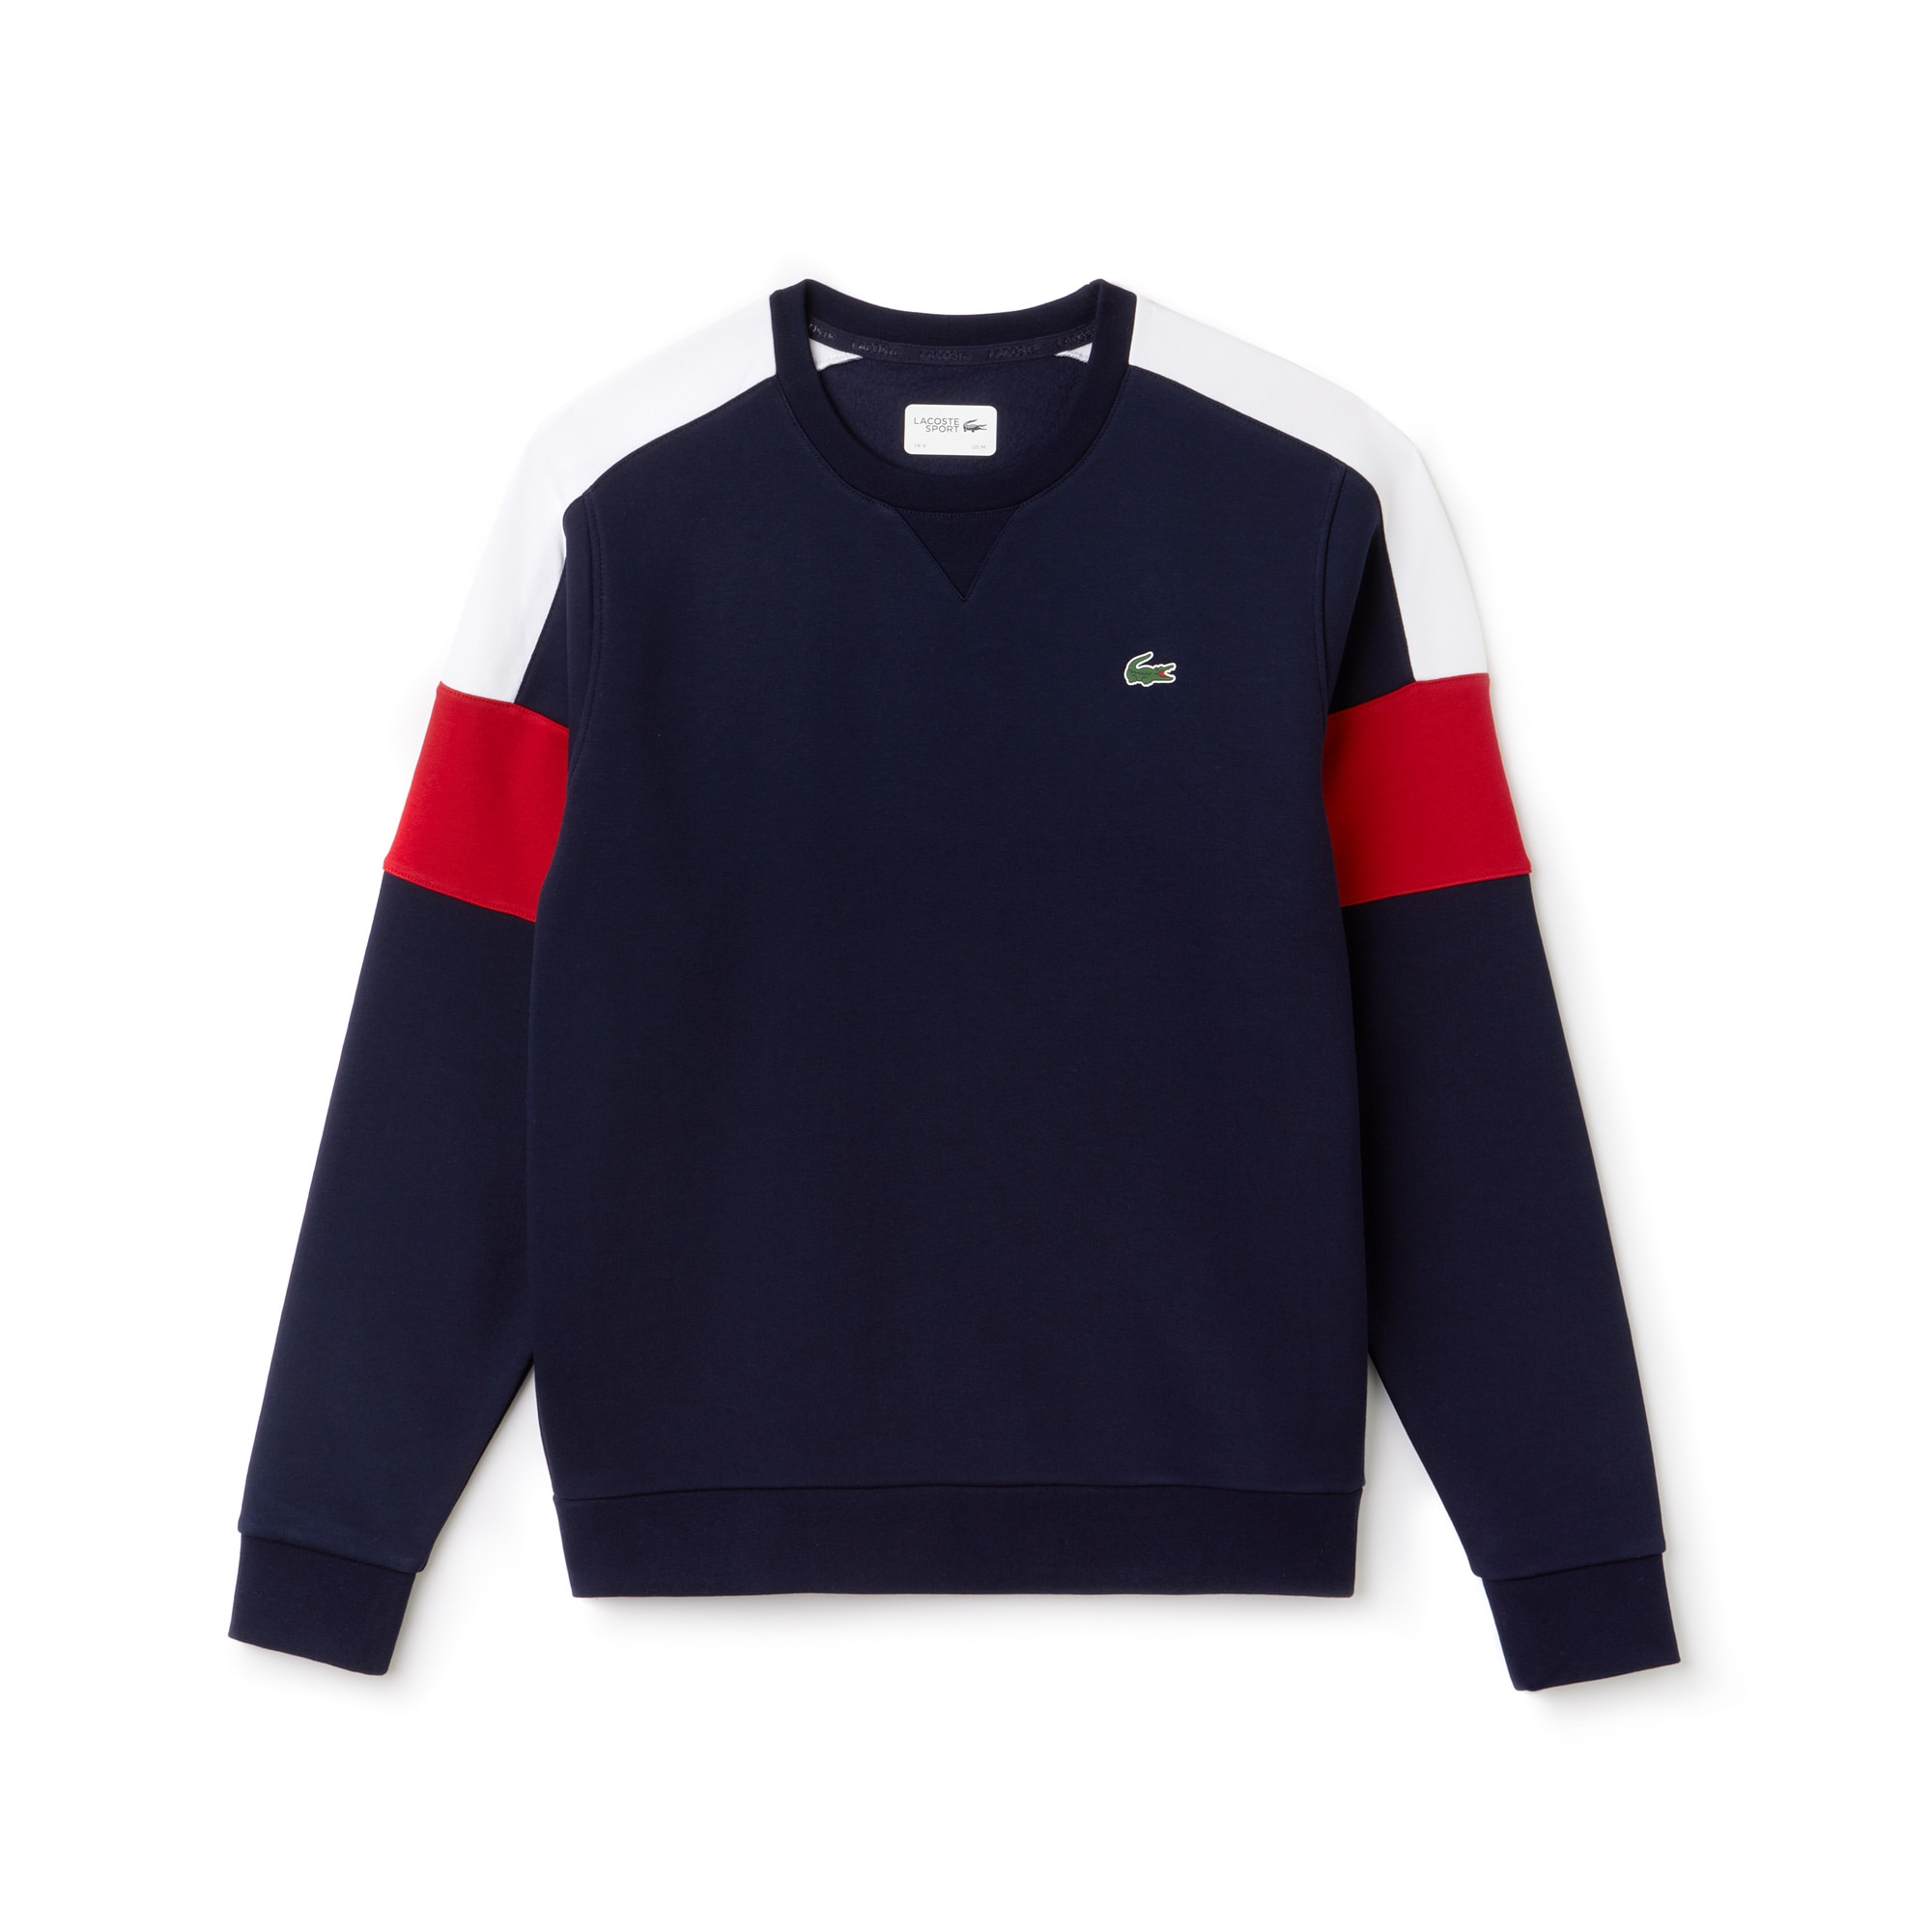 Men's SPORT Colorblock Fleece Tennis Sweatshirt